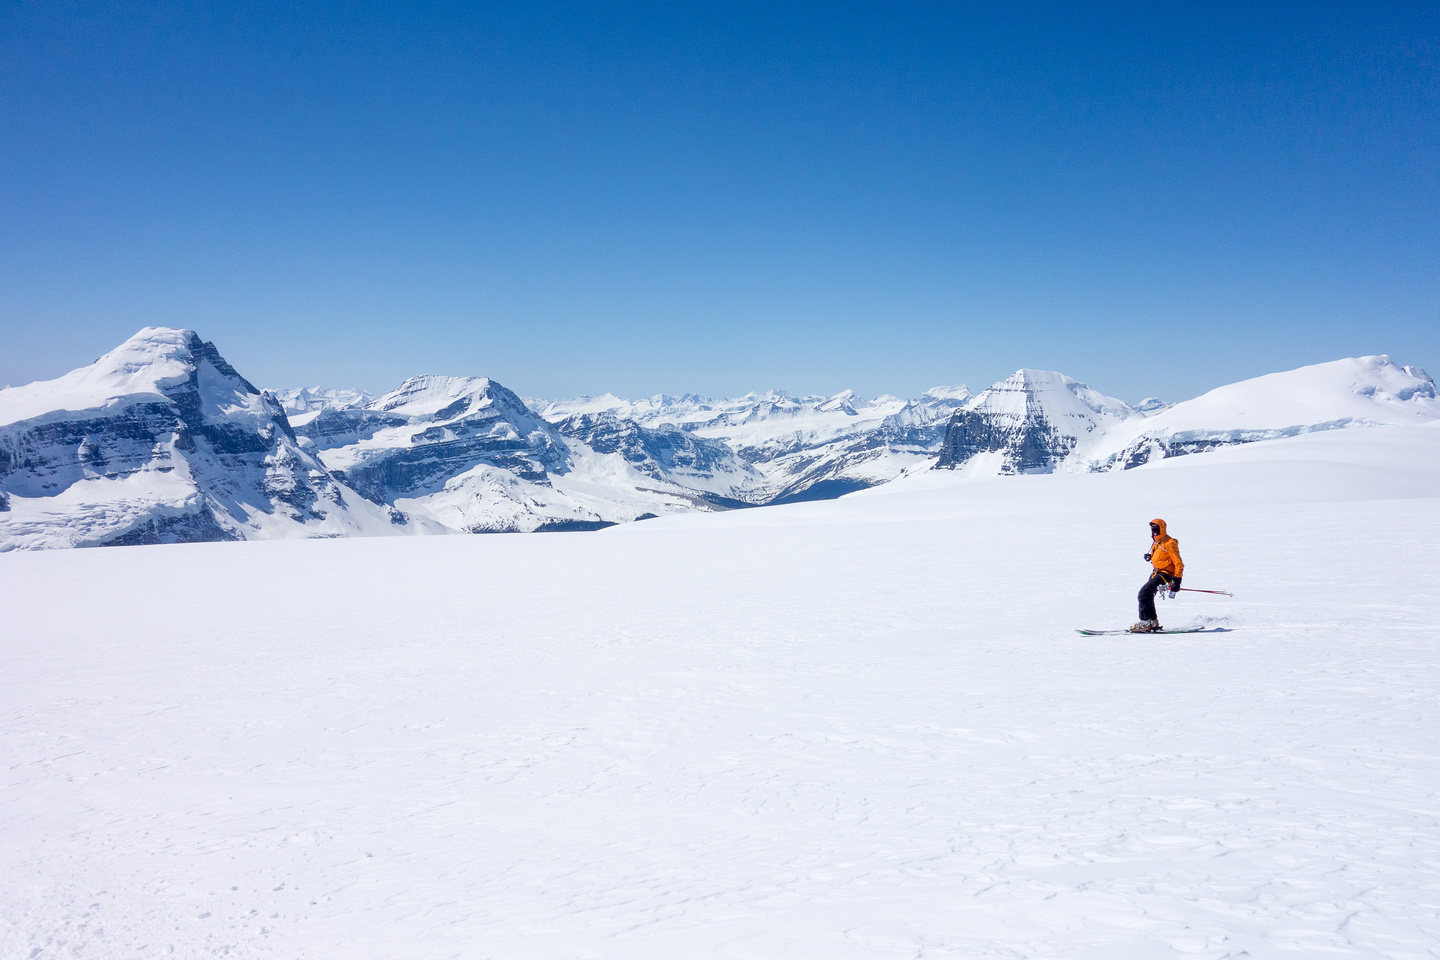 A delightful ski back down to our packs.